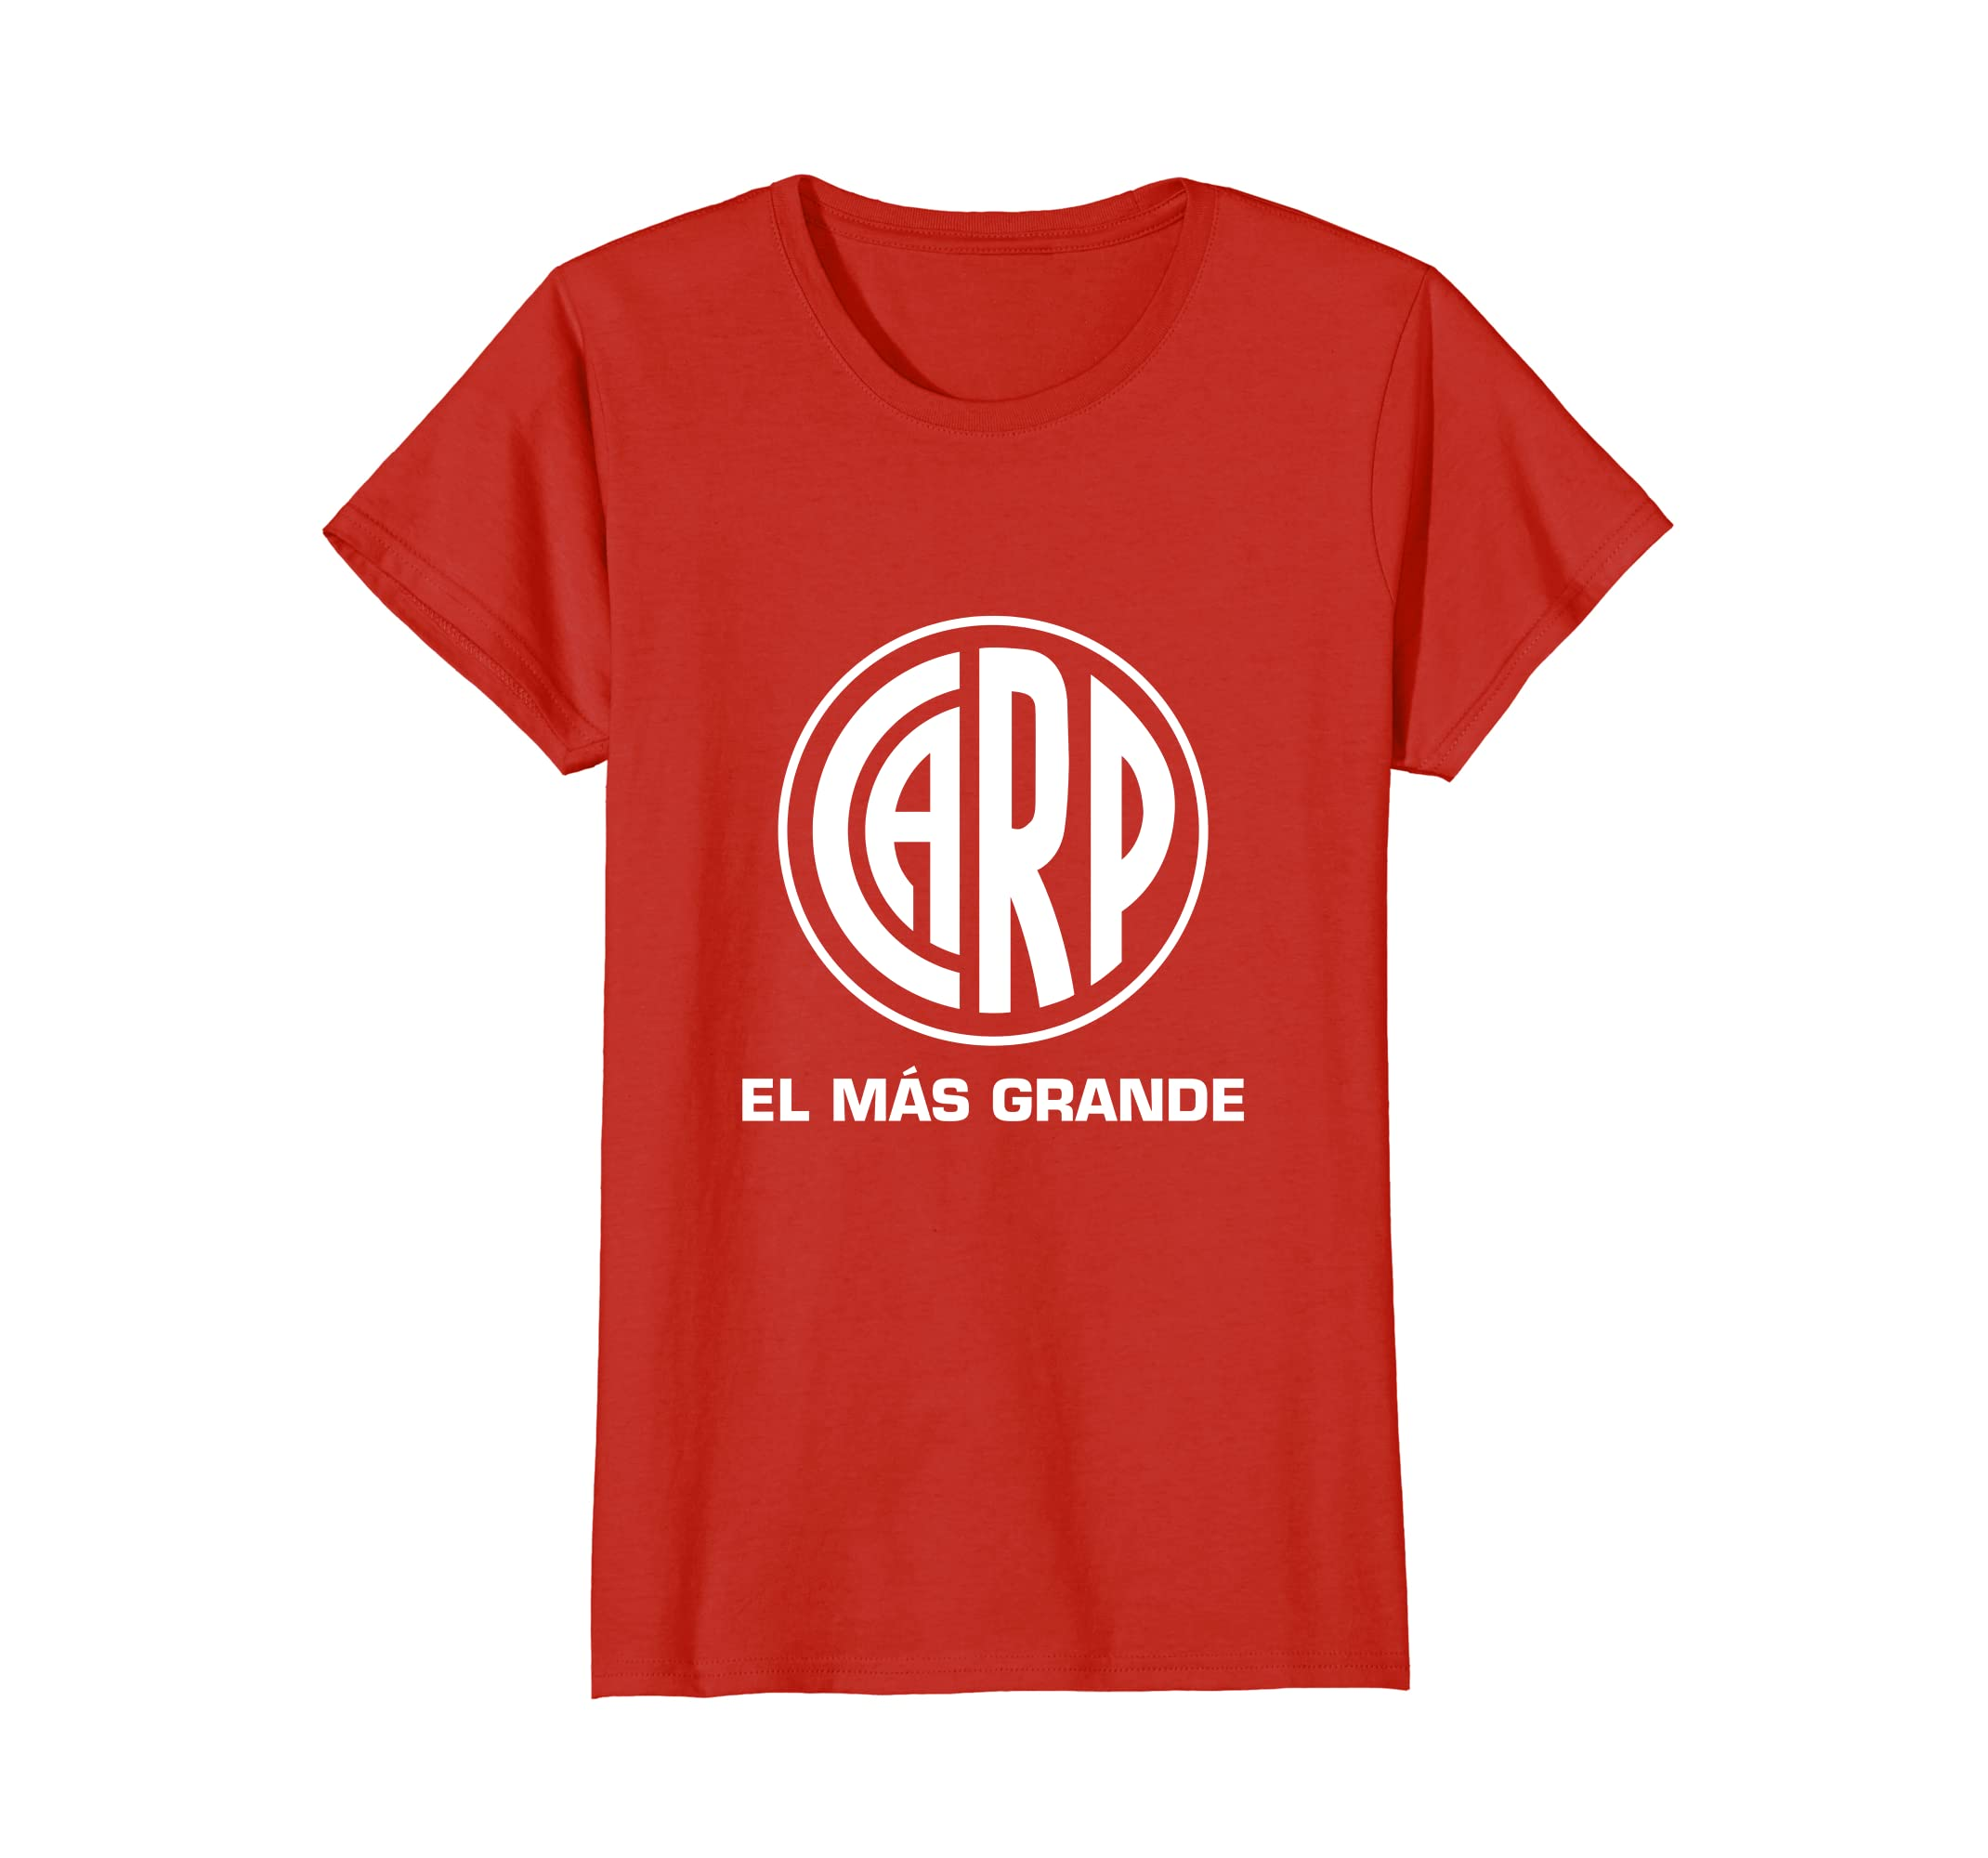 Amazon.com: Club Atletico River Plate Argentina Camiseta TShirt Jersey: Clothing